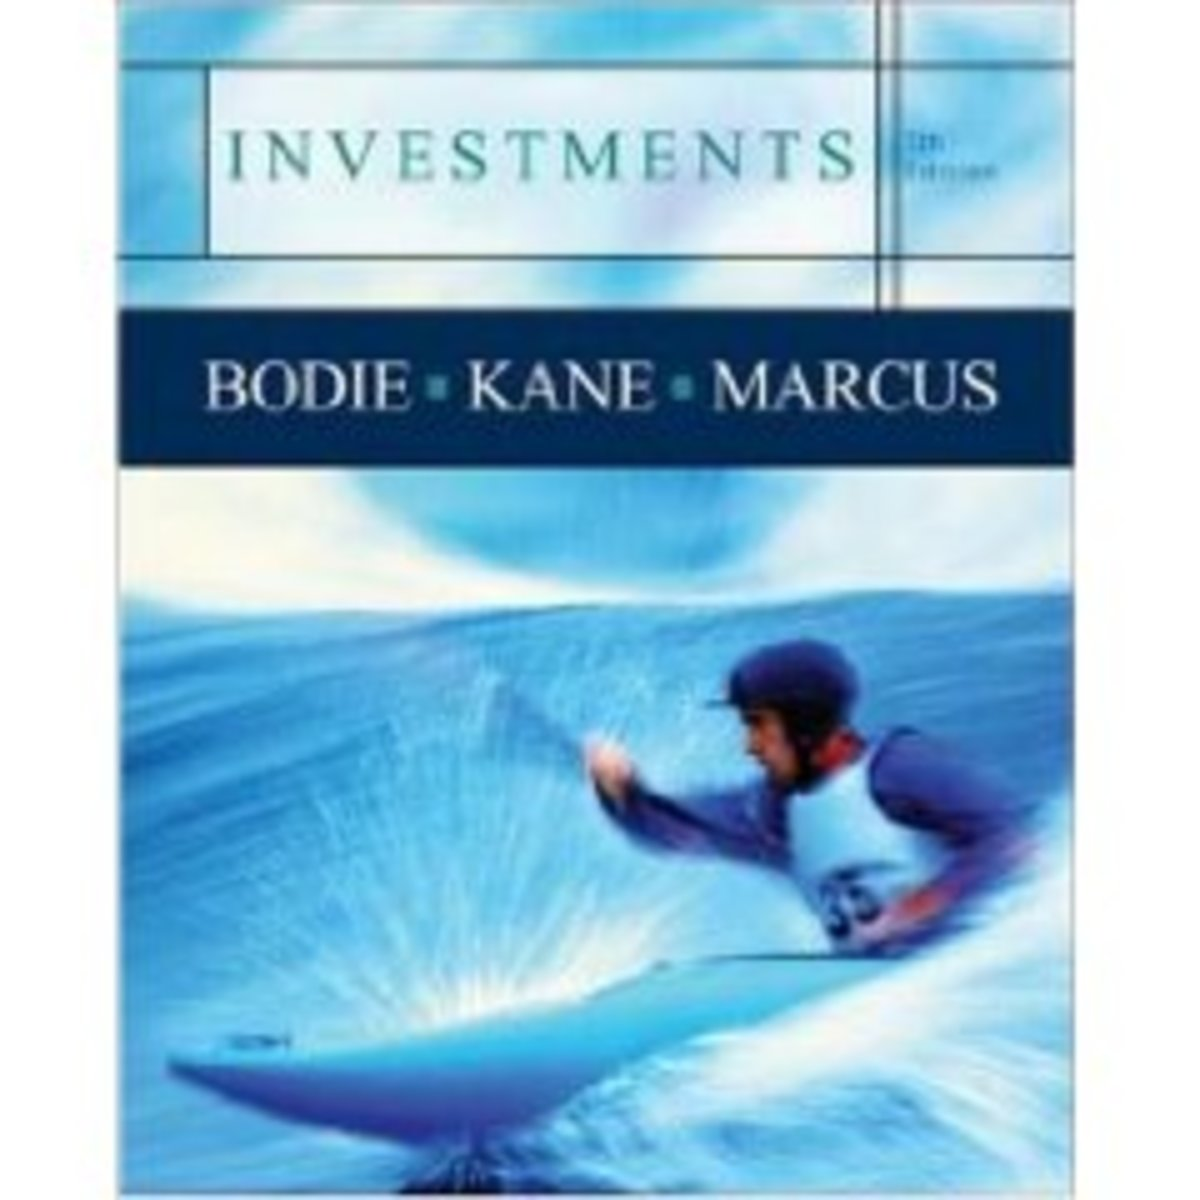 Buy Books Online On Value Investing and Learn How to Invest in Stock market